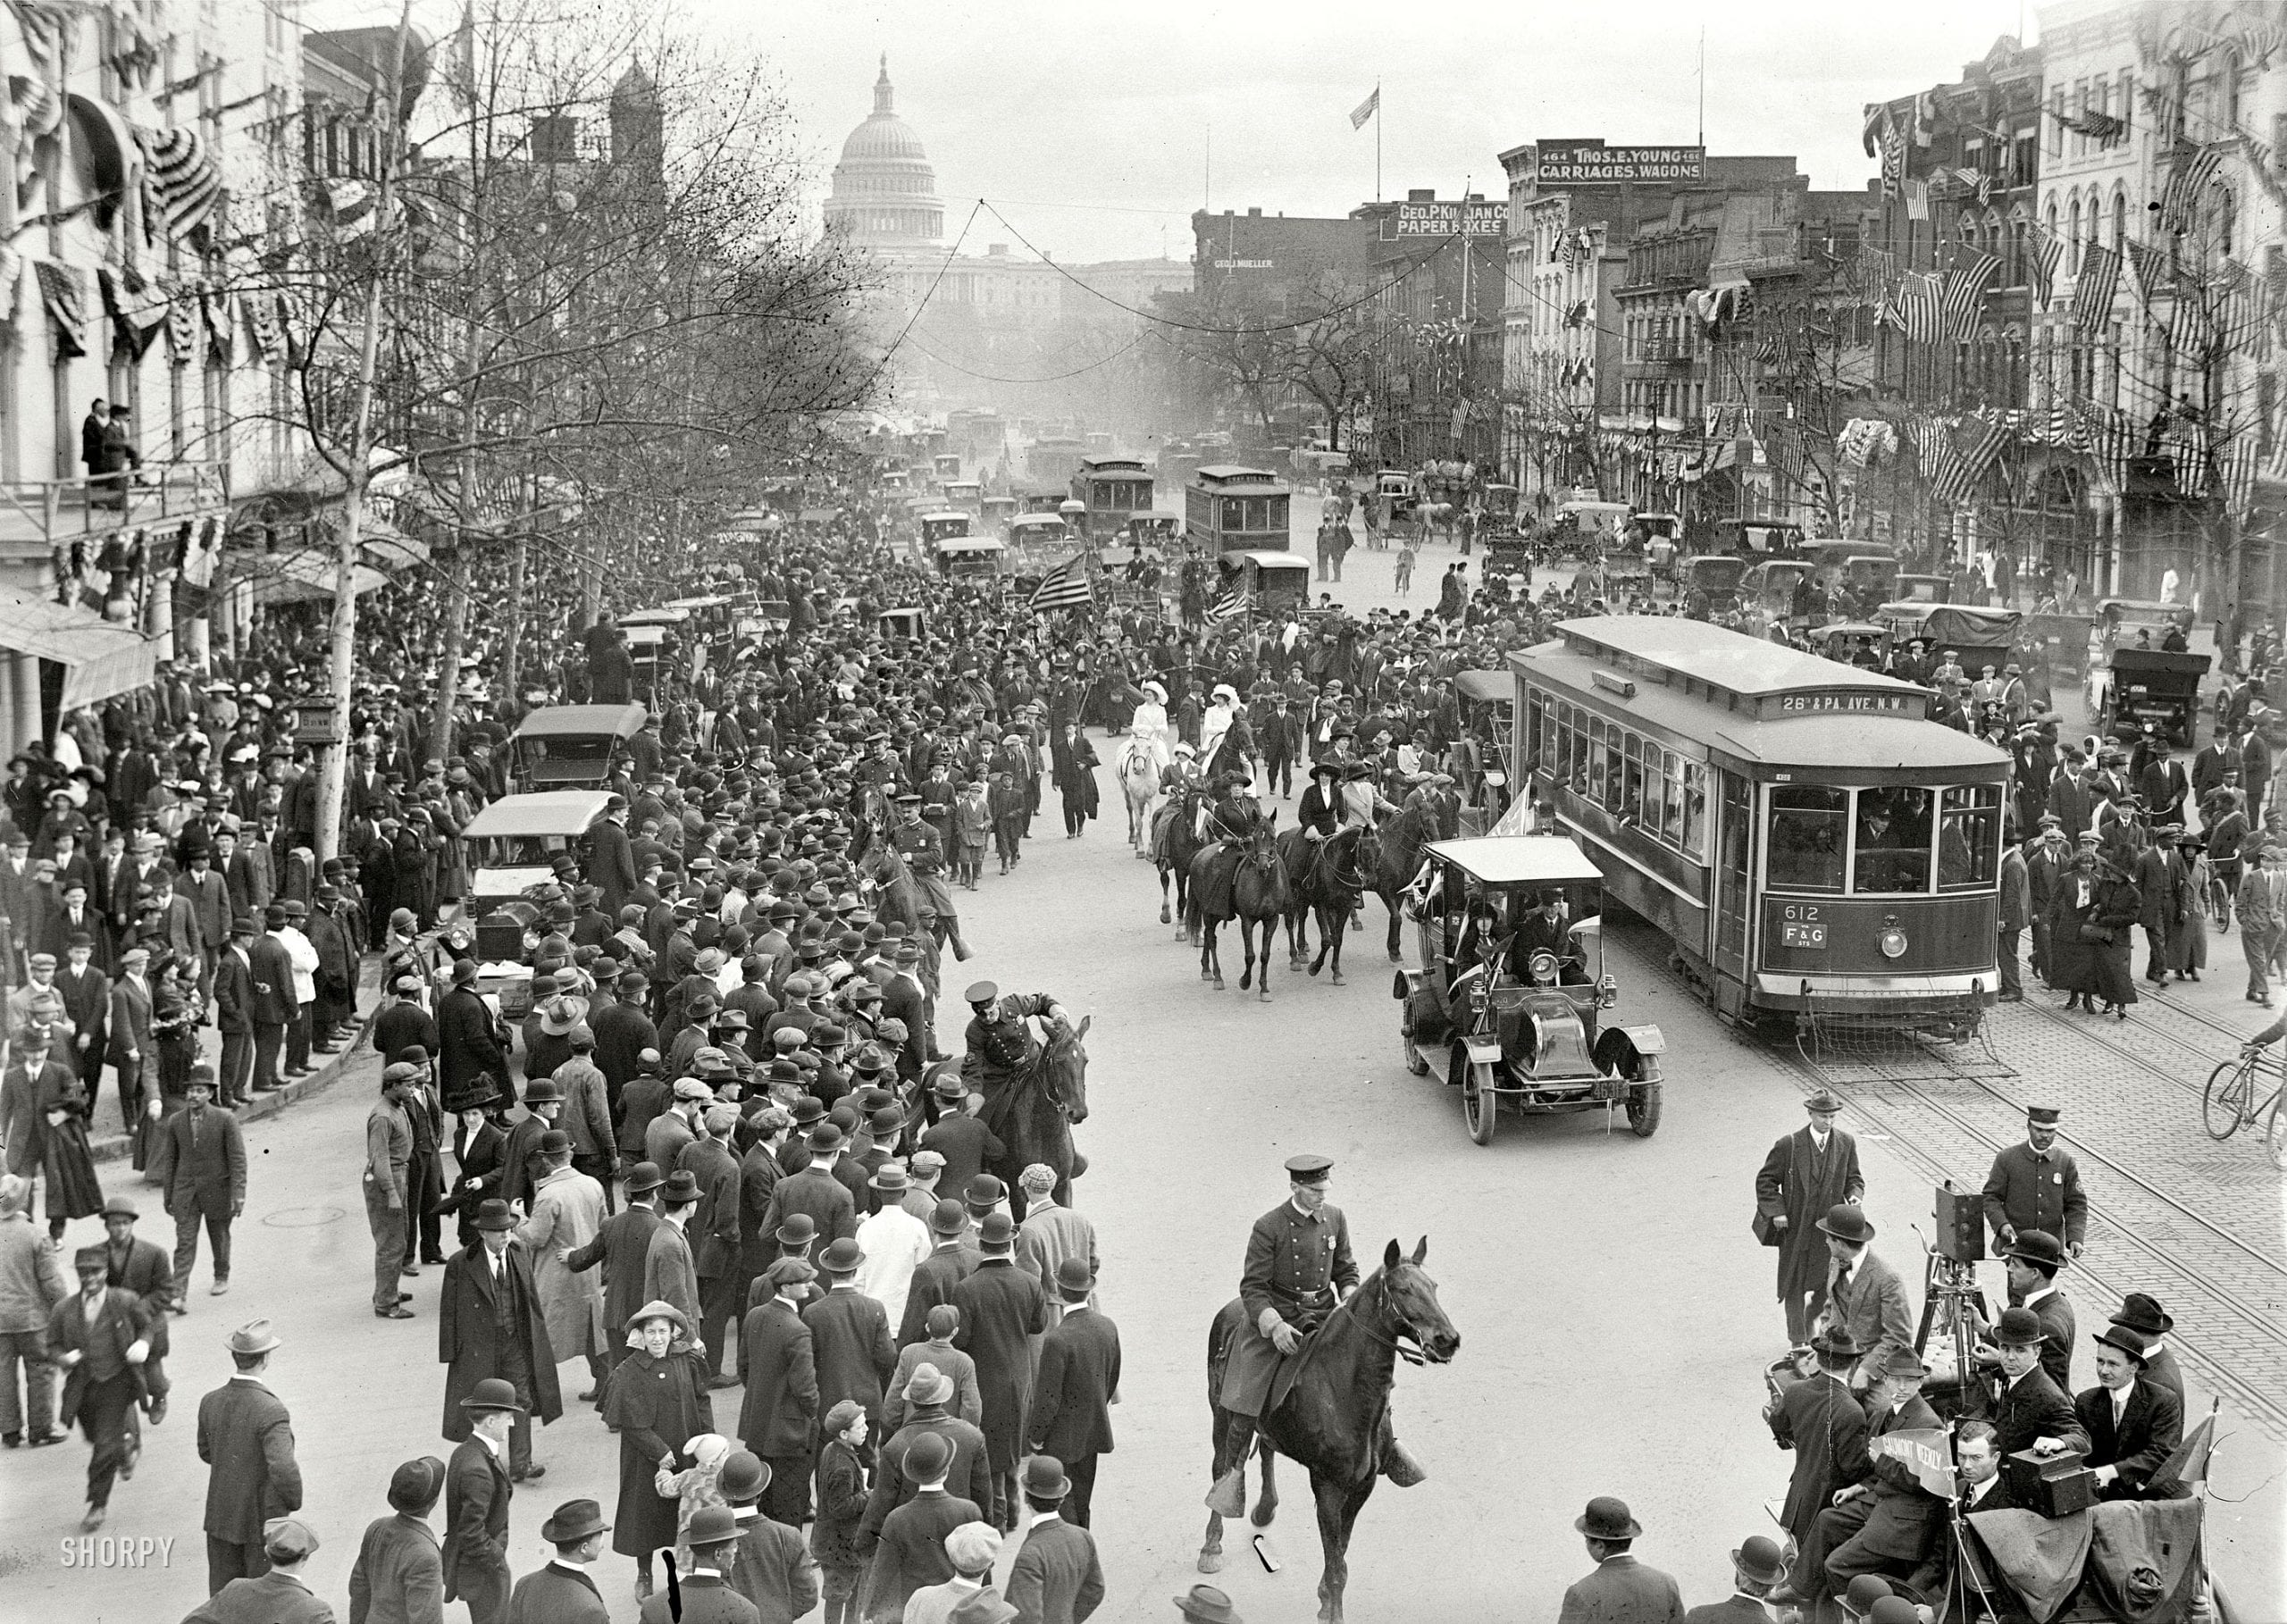 Old Photo Friday: Women's Suffrage Parade in 1914